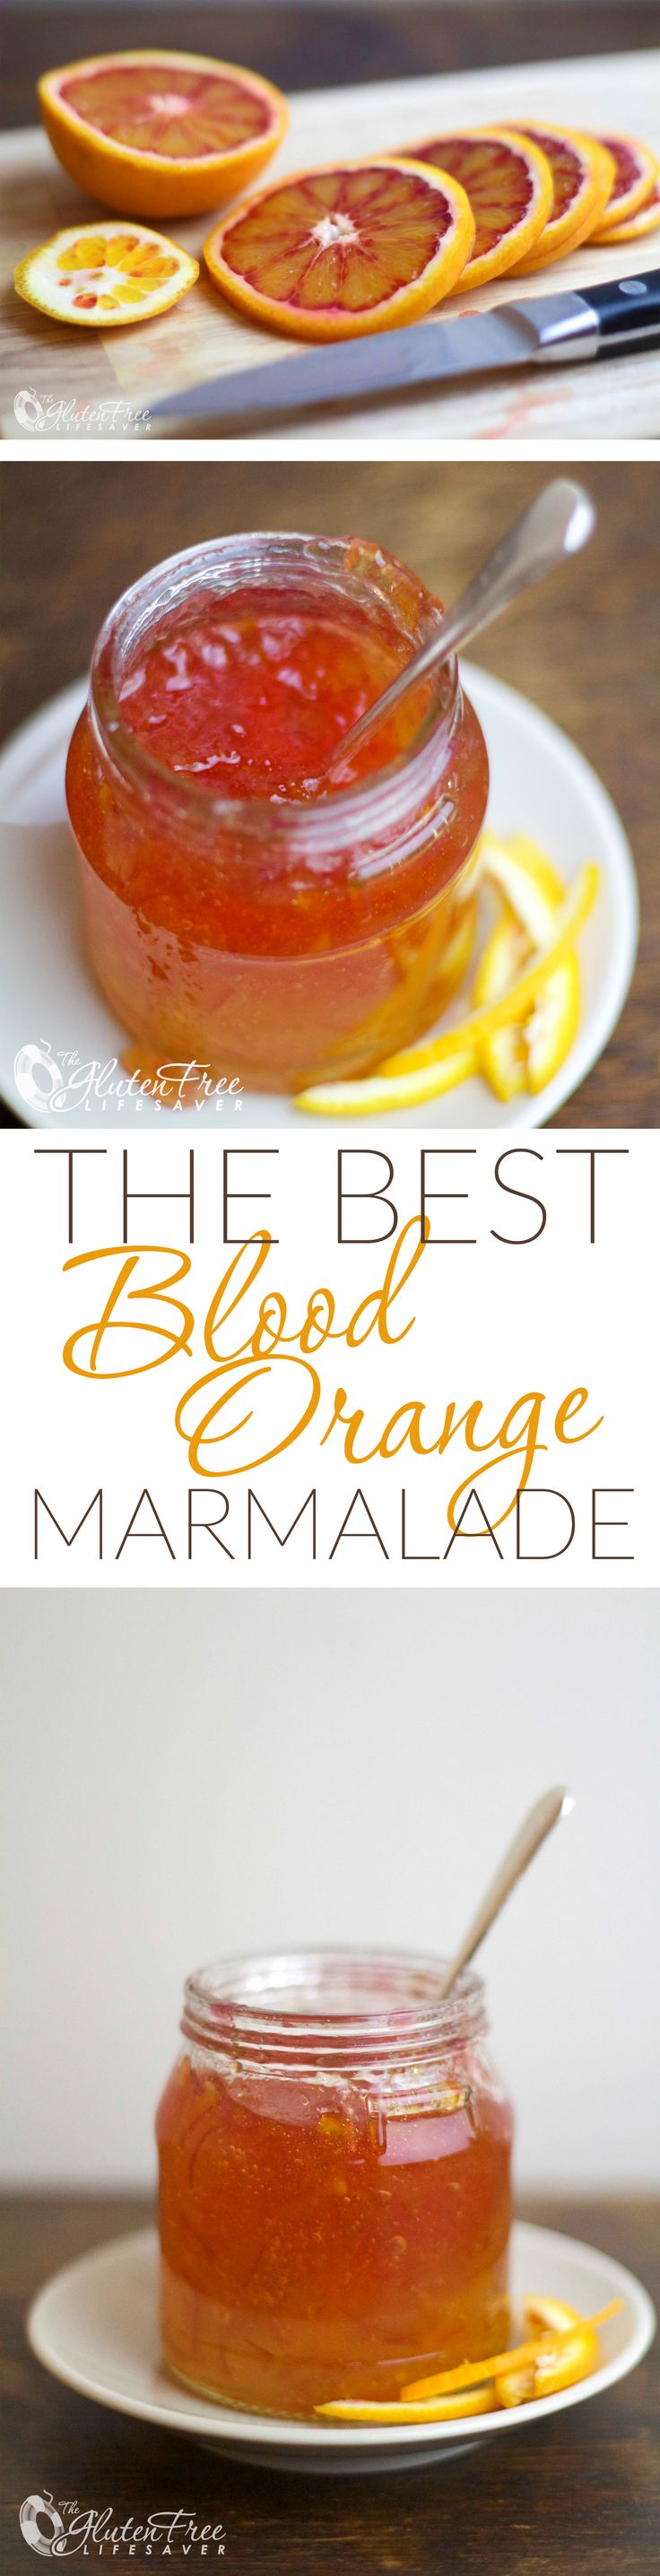 The World's Best Homemade Blood Orange Marmalade